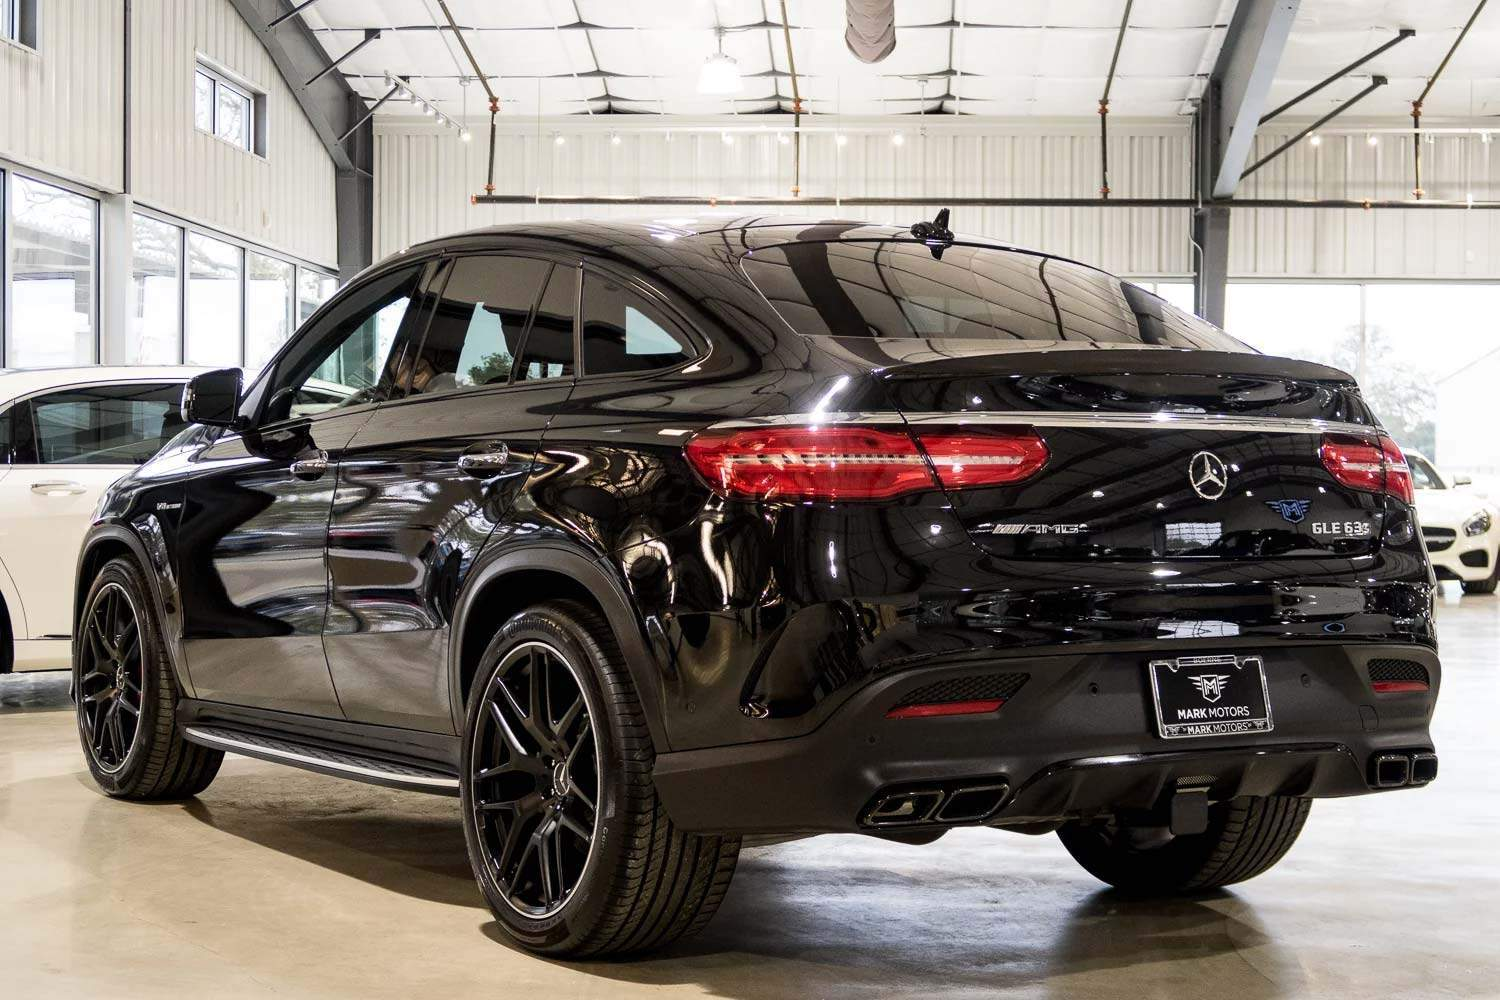 Amg Gle 63 >> 2018 Mercedes Benz Amg Gle 63 S For Sale In Boerne New